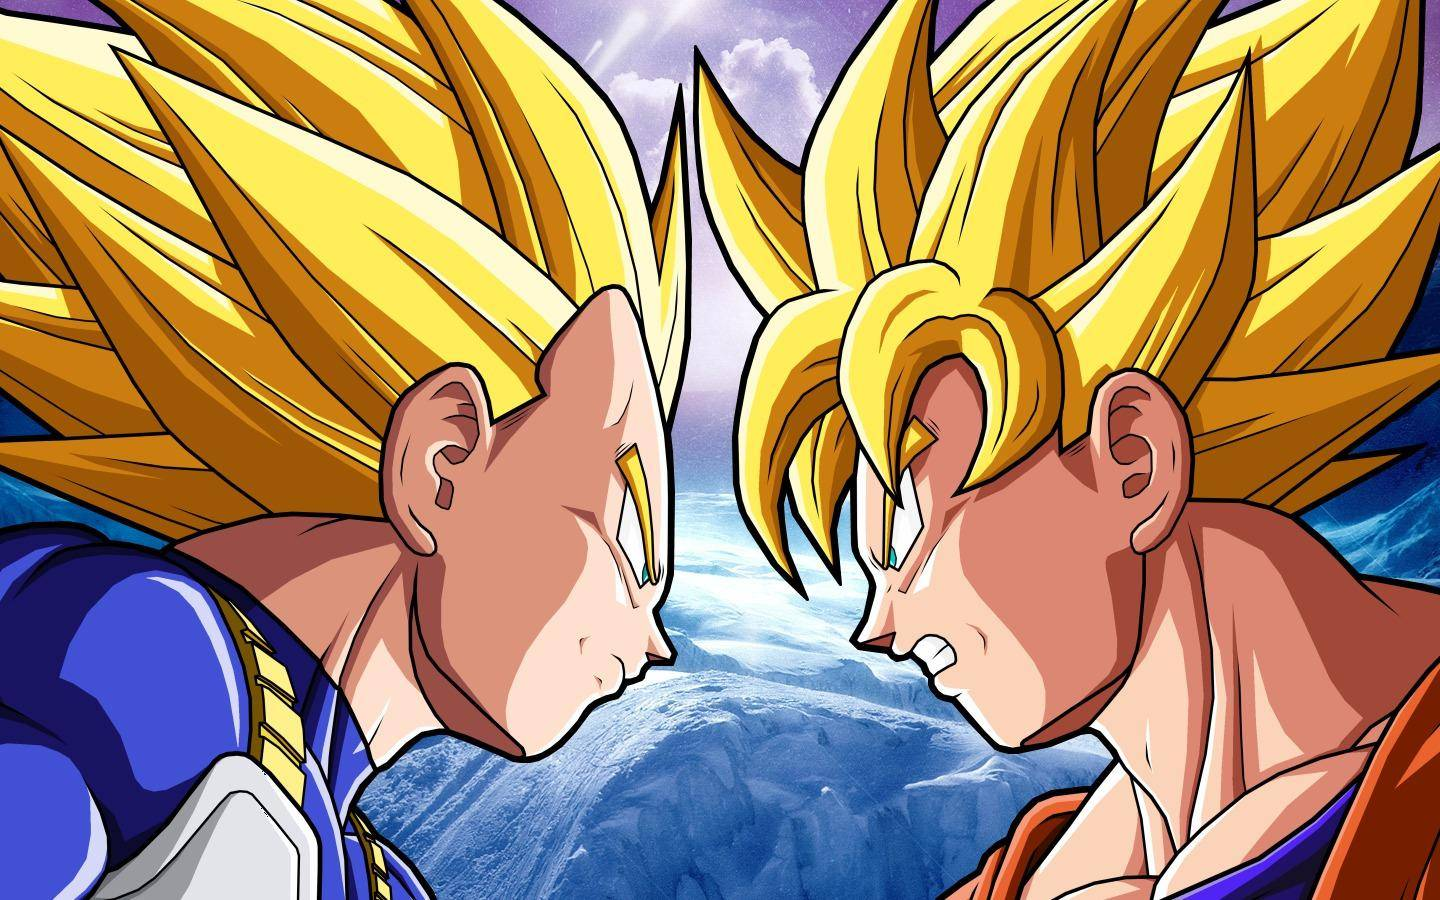 Free Download Goku And Vegeta Dragonball Z Wallpaper 1440x900 For Your Desktop Mobile Tablet Explore 50 Dragon Ball Wallpaper Goku Dragon Ball Wallpaper Goku Dragon Ball Goku Wallpaper Dragon